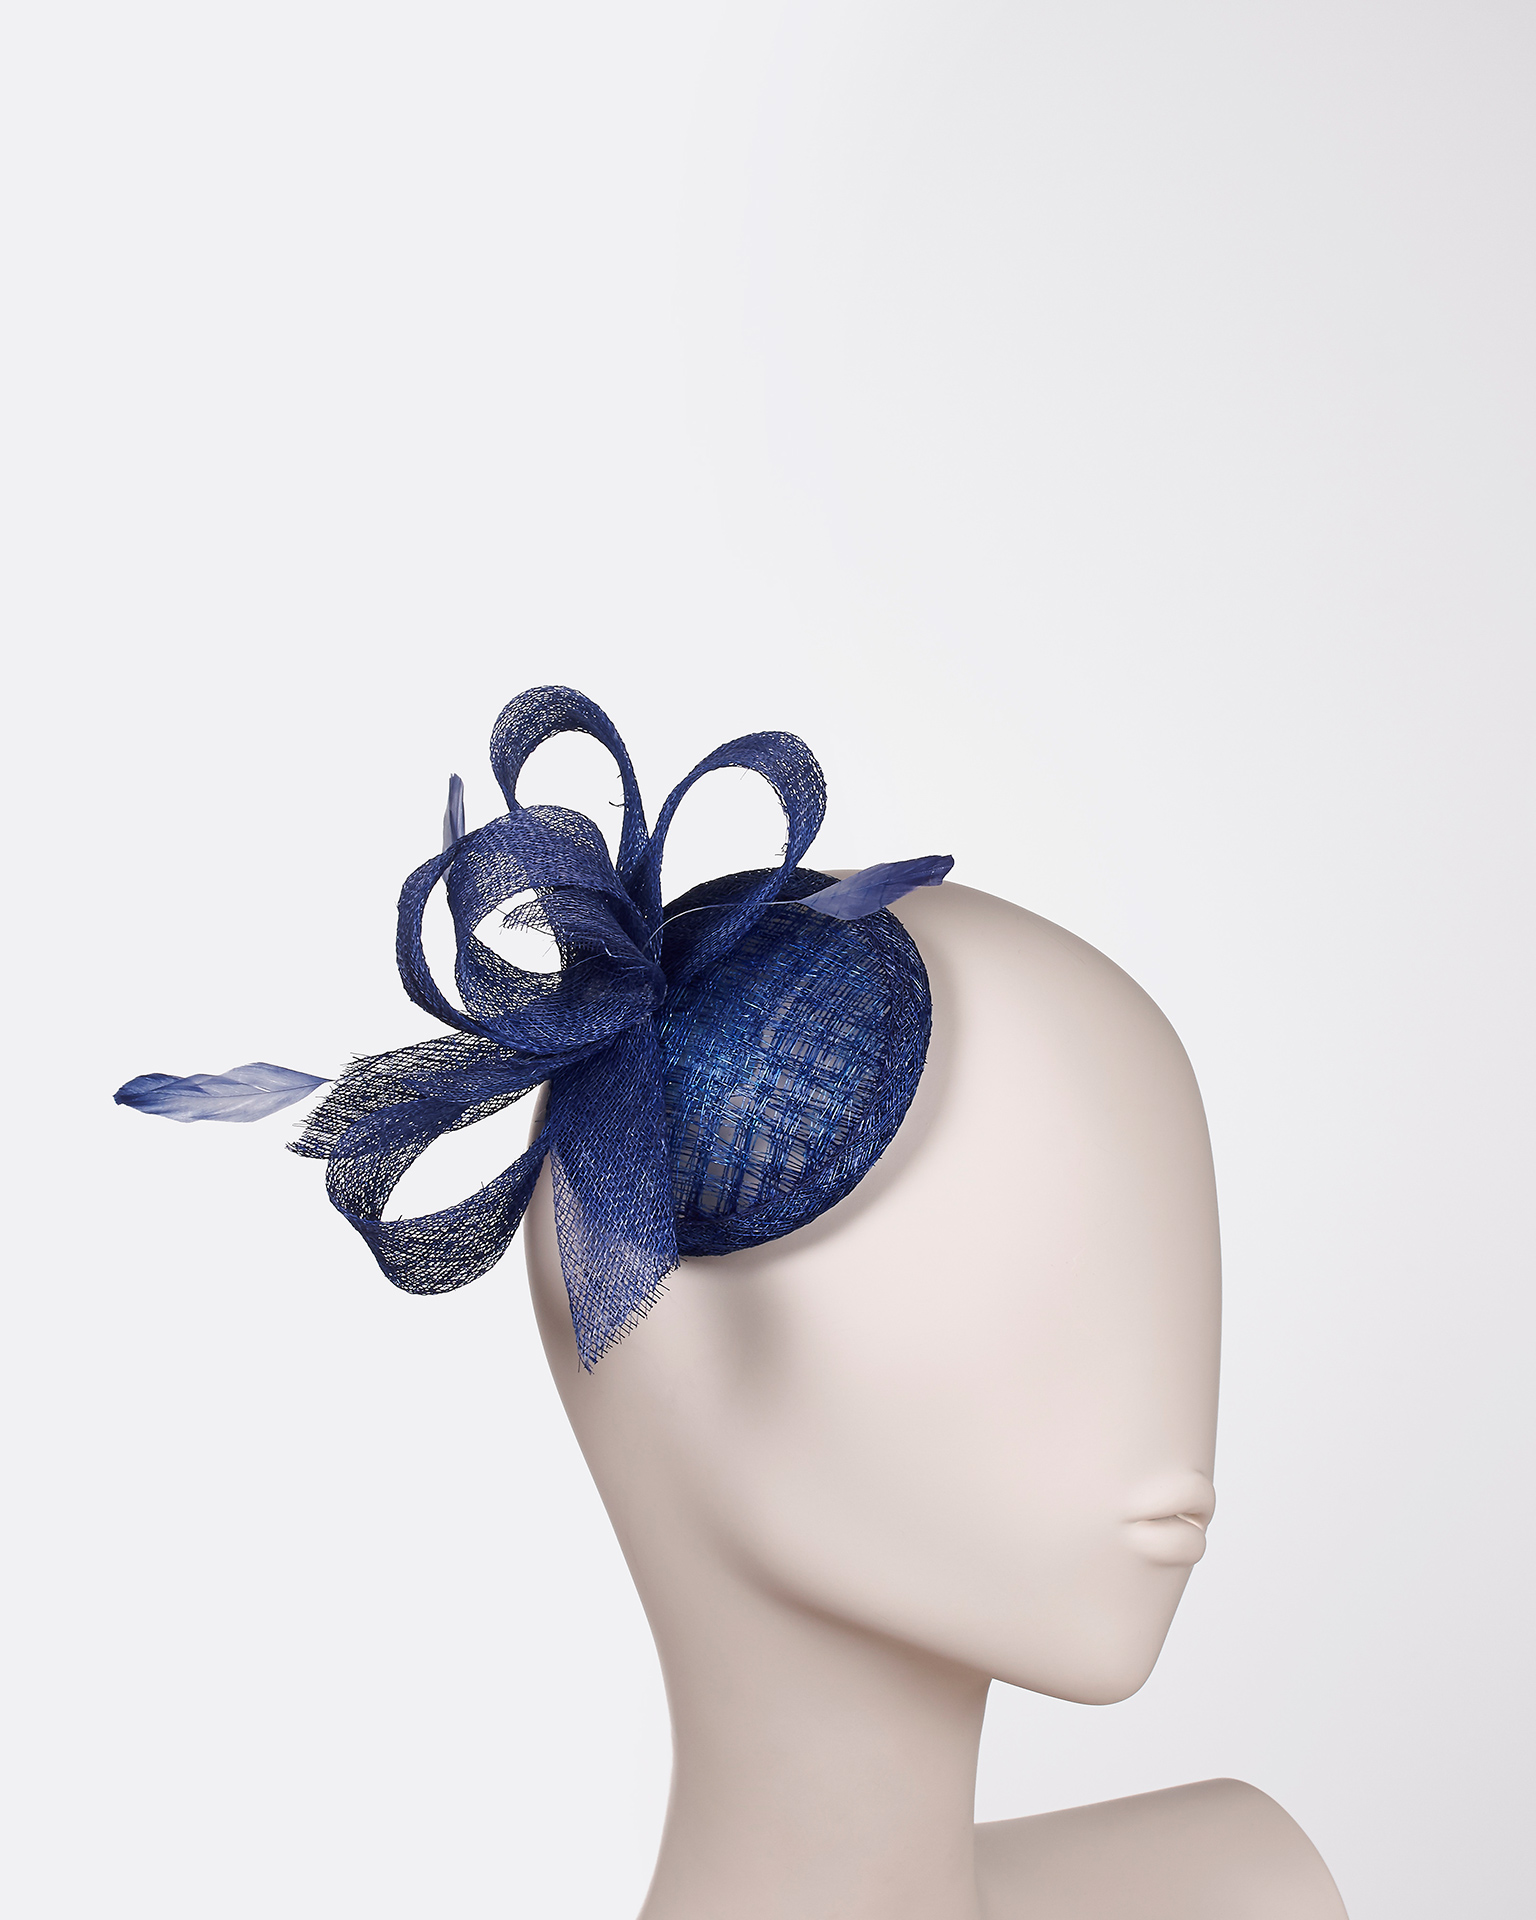 Sinamay headpiece with feather detail. Available in black, navy blue, cobalt, blue, silver, nude, red, coral, fuchsia and yellow. 2018 FIESTA AIRE BARCELONA Collection.